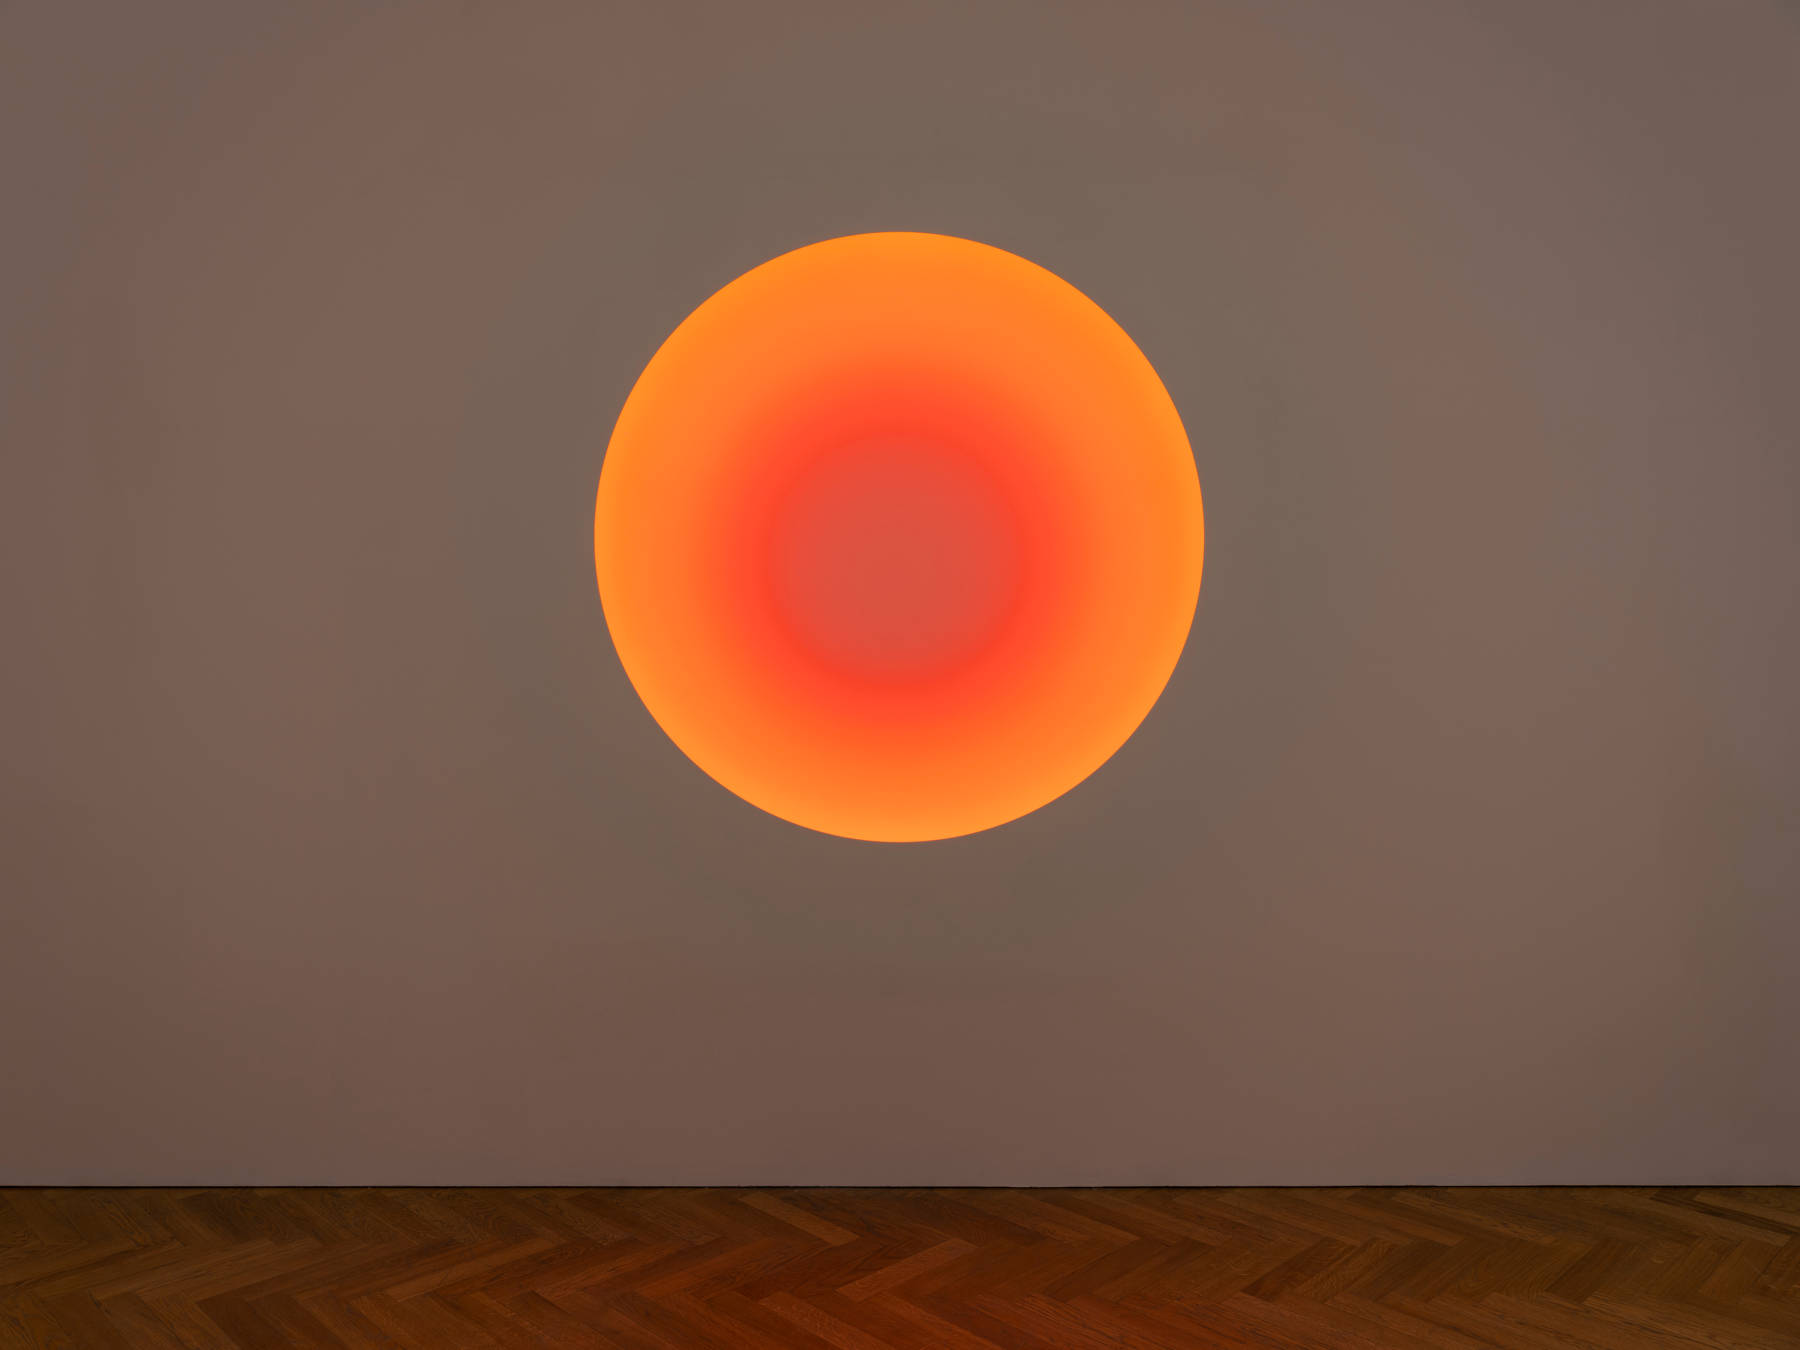 Pace James Turrell